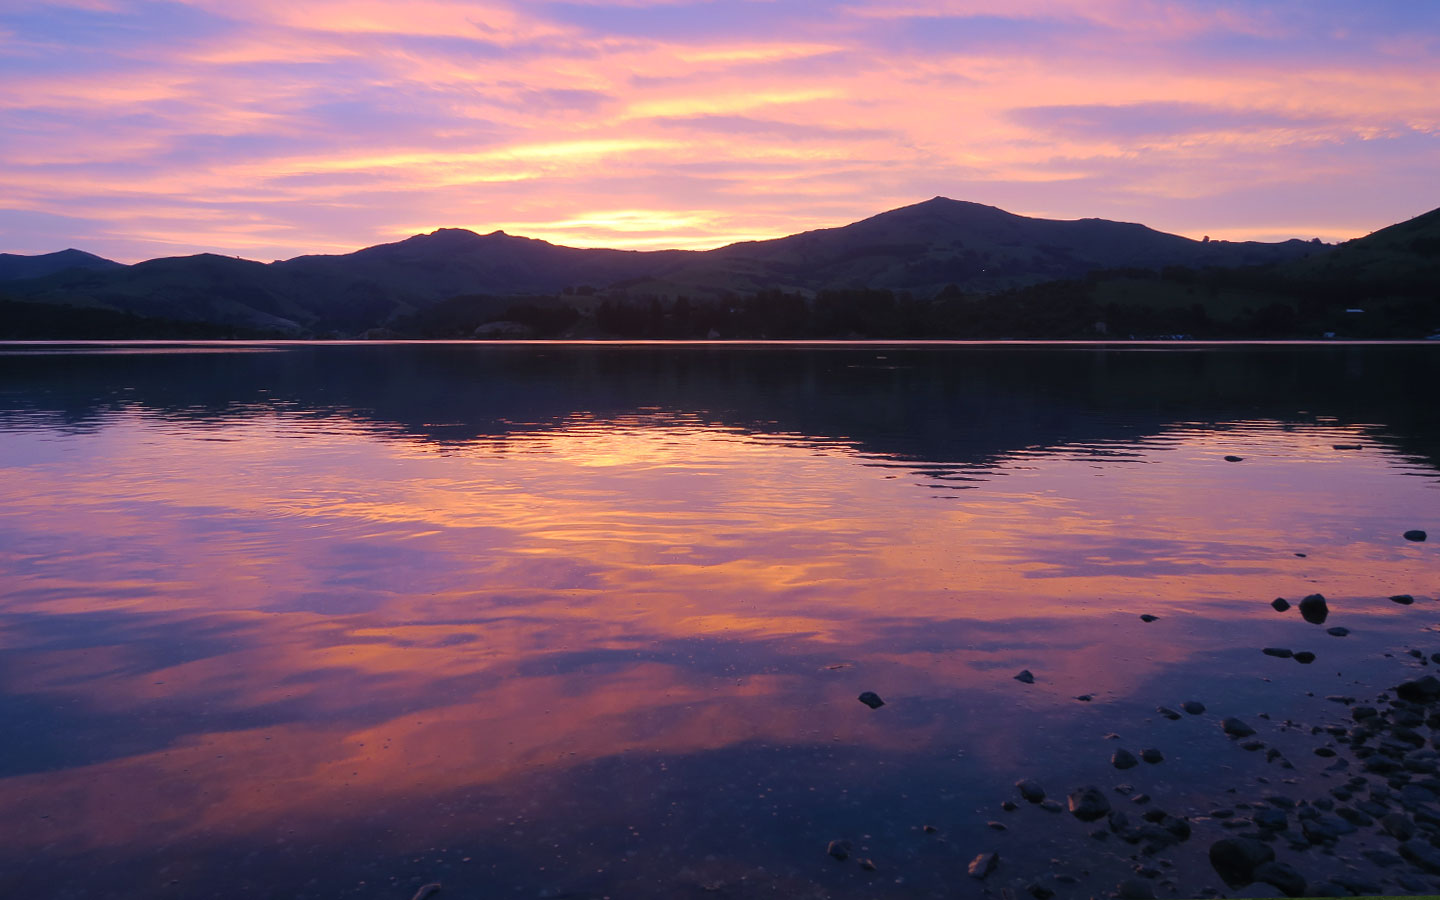 sunset with reflection of mountains in duvauchelle in new zealand